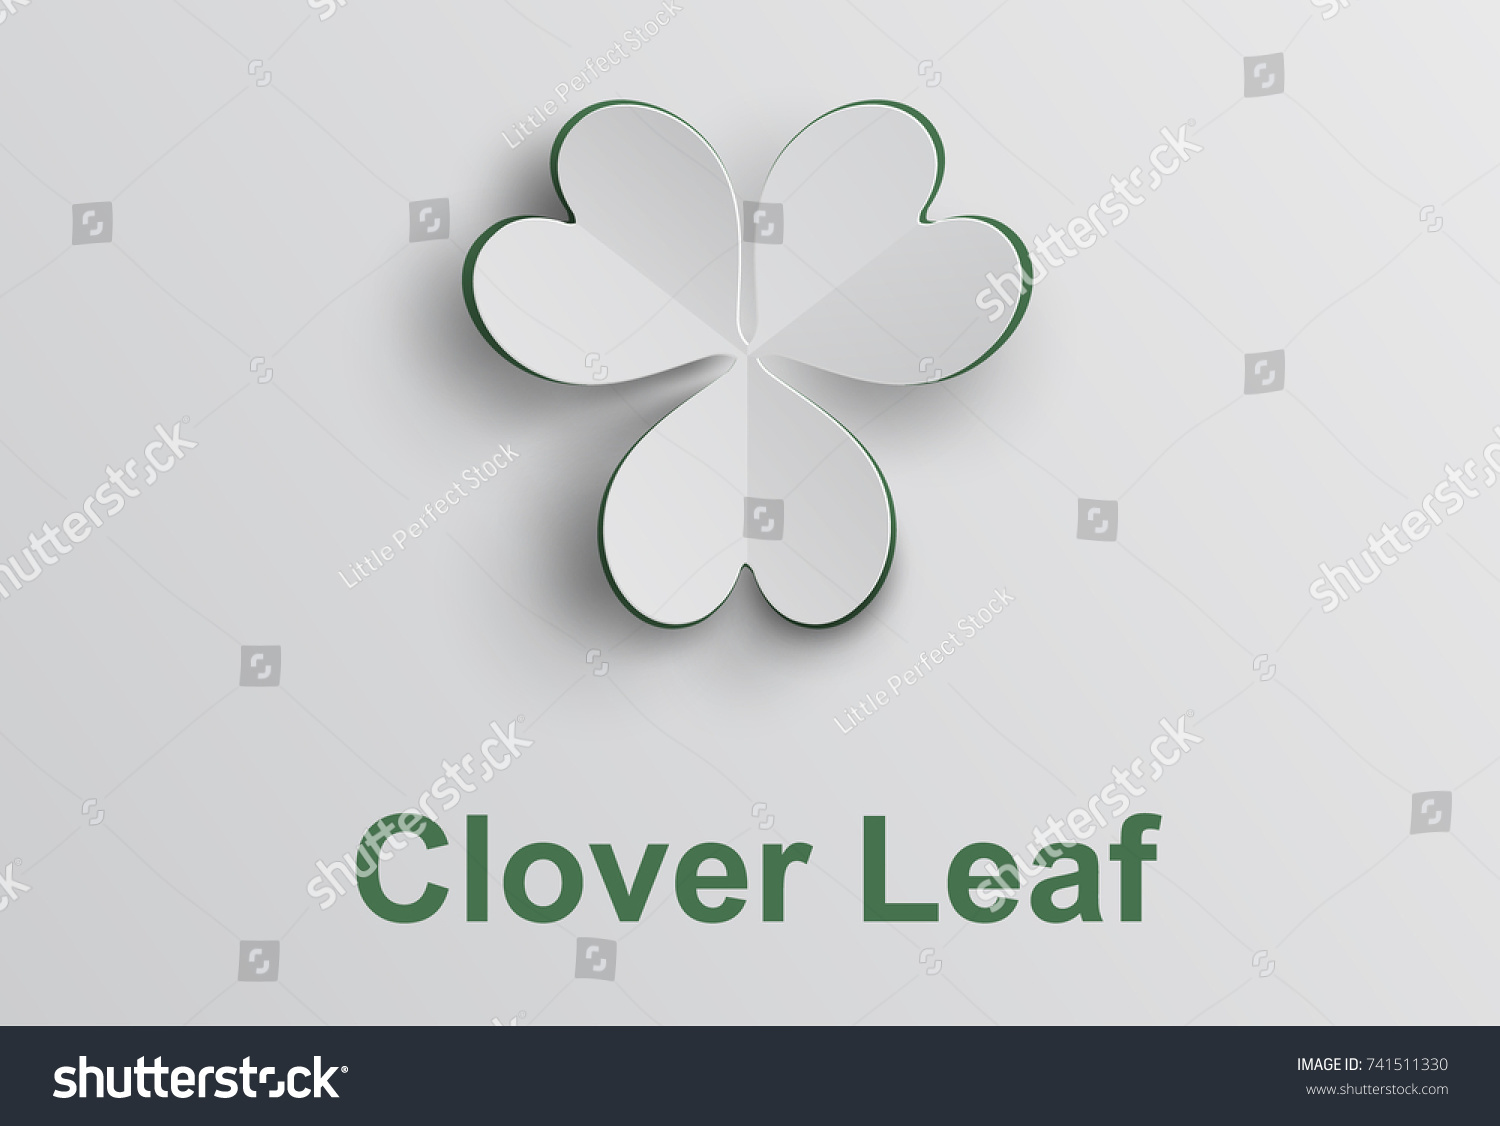 hight resolution of white clover leaf in paper cut